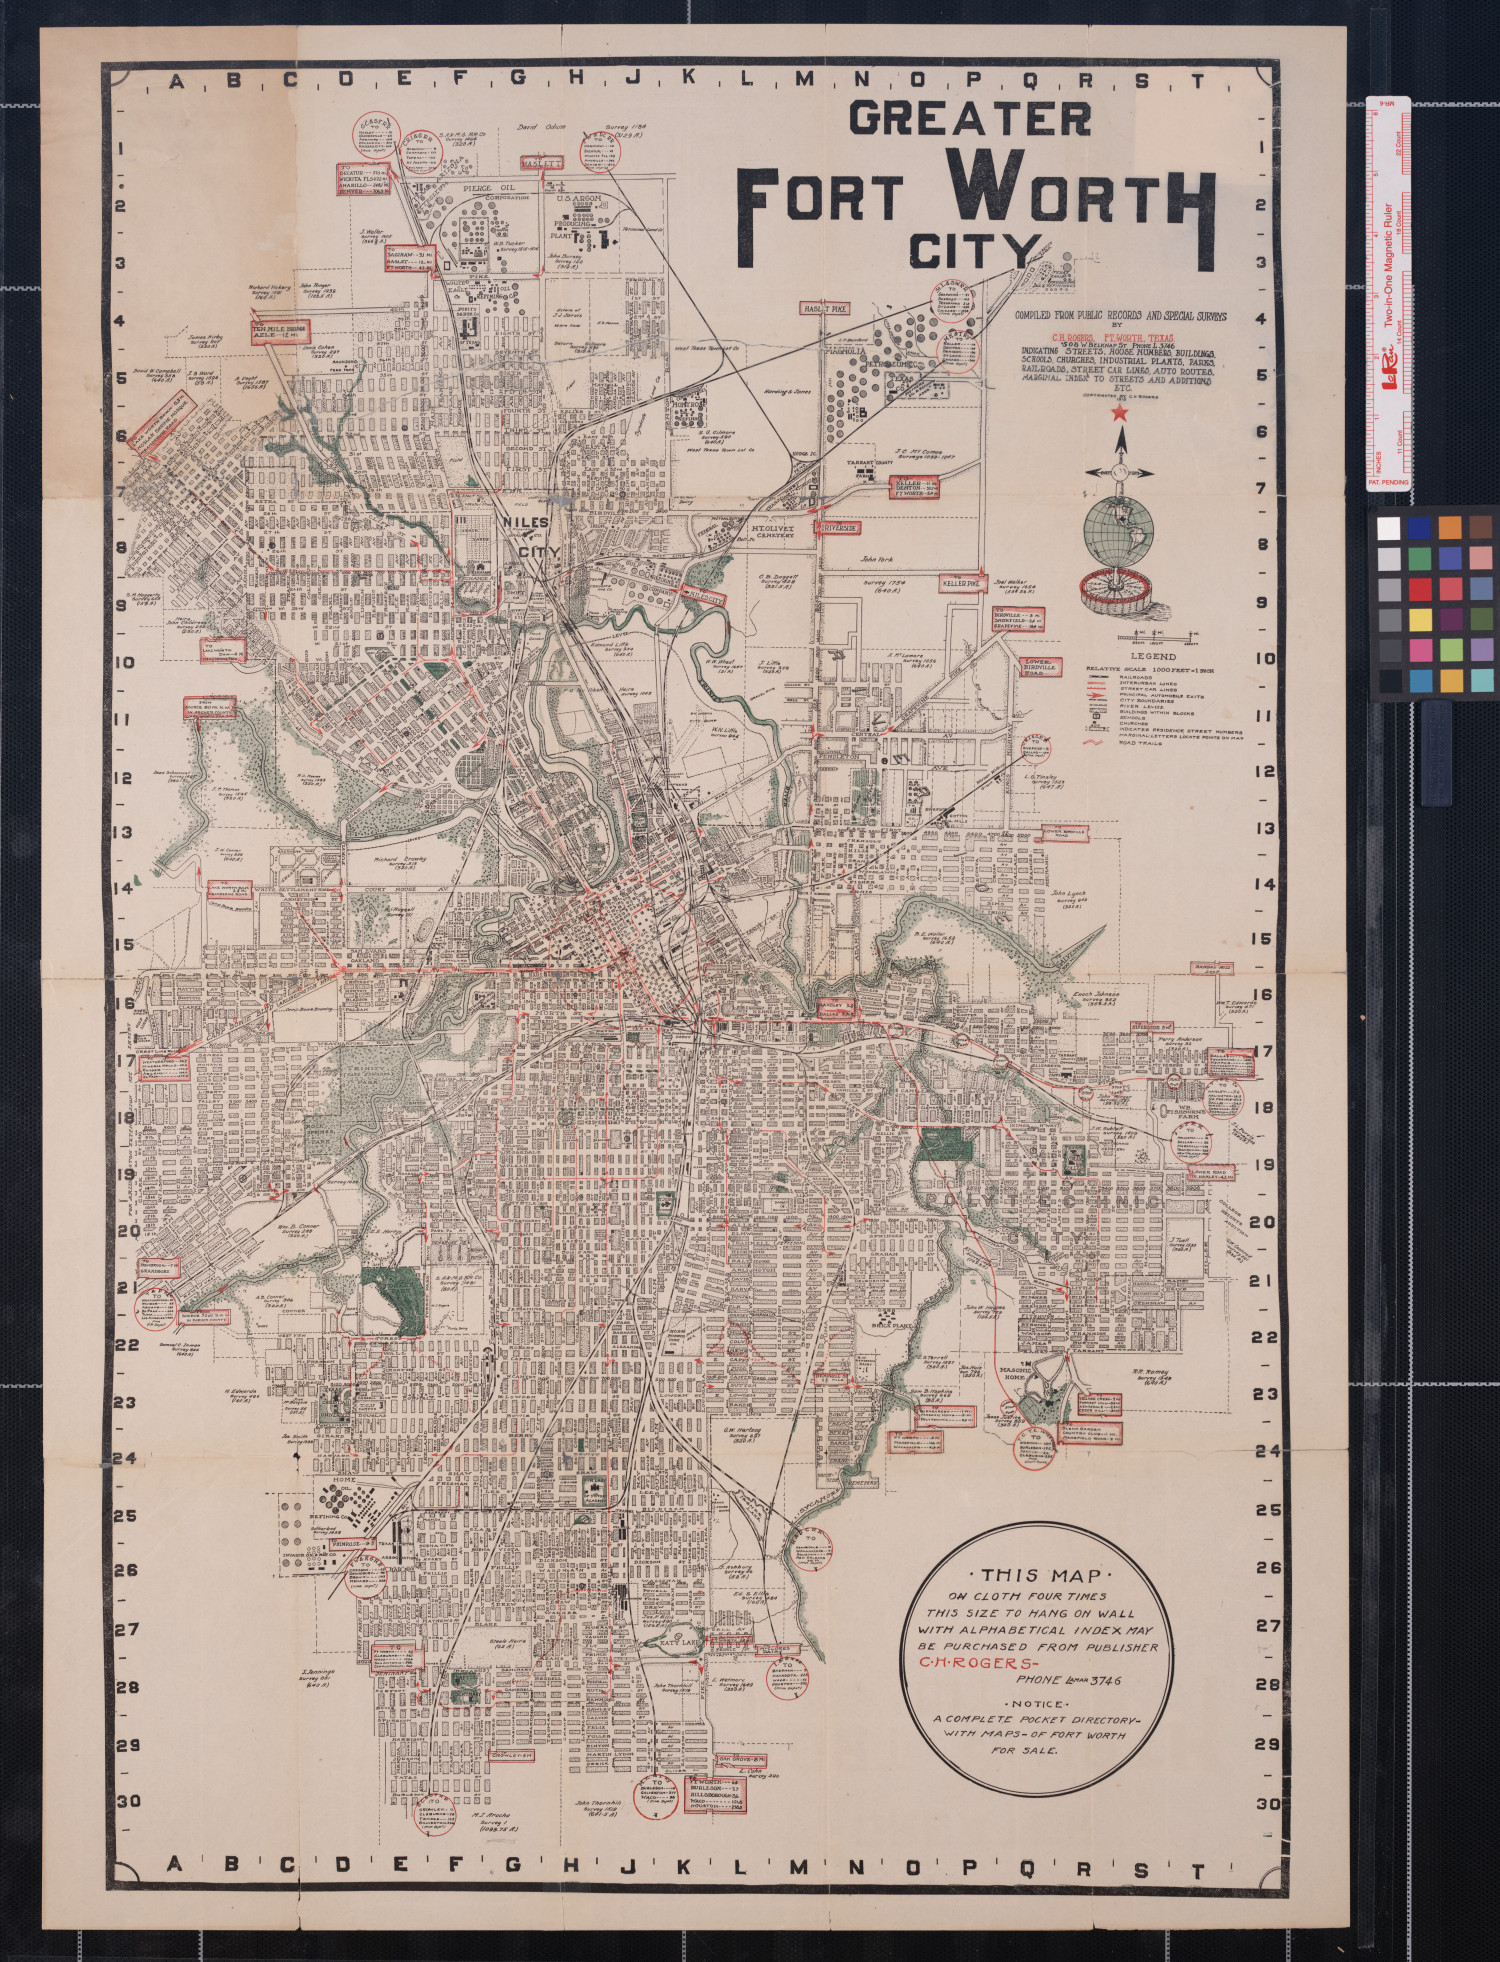 Greater Fort Worth City - The Portal to Texas History